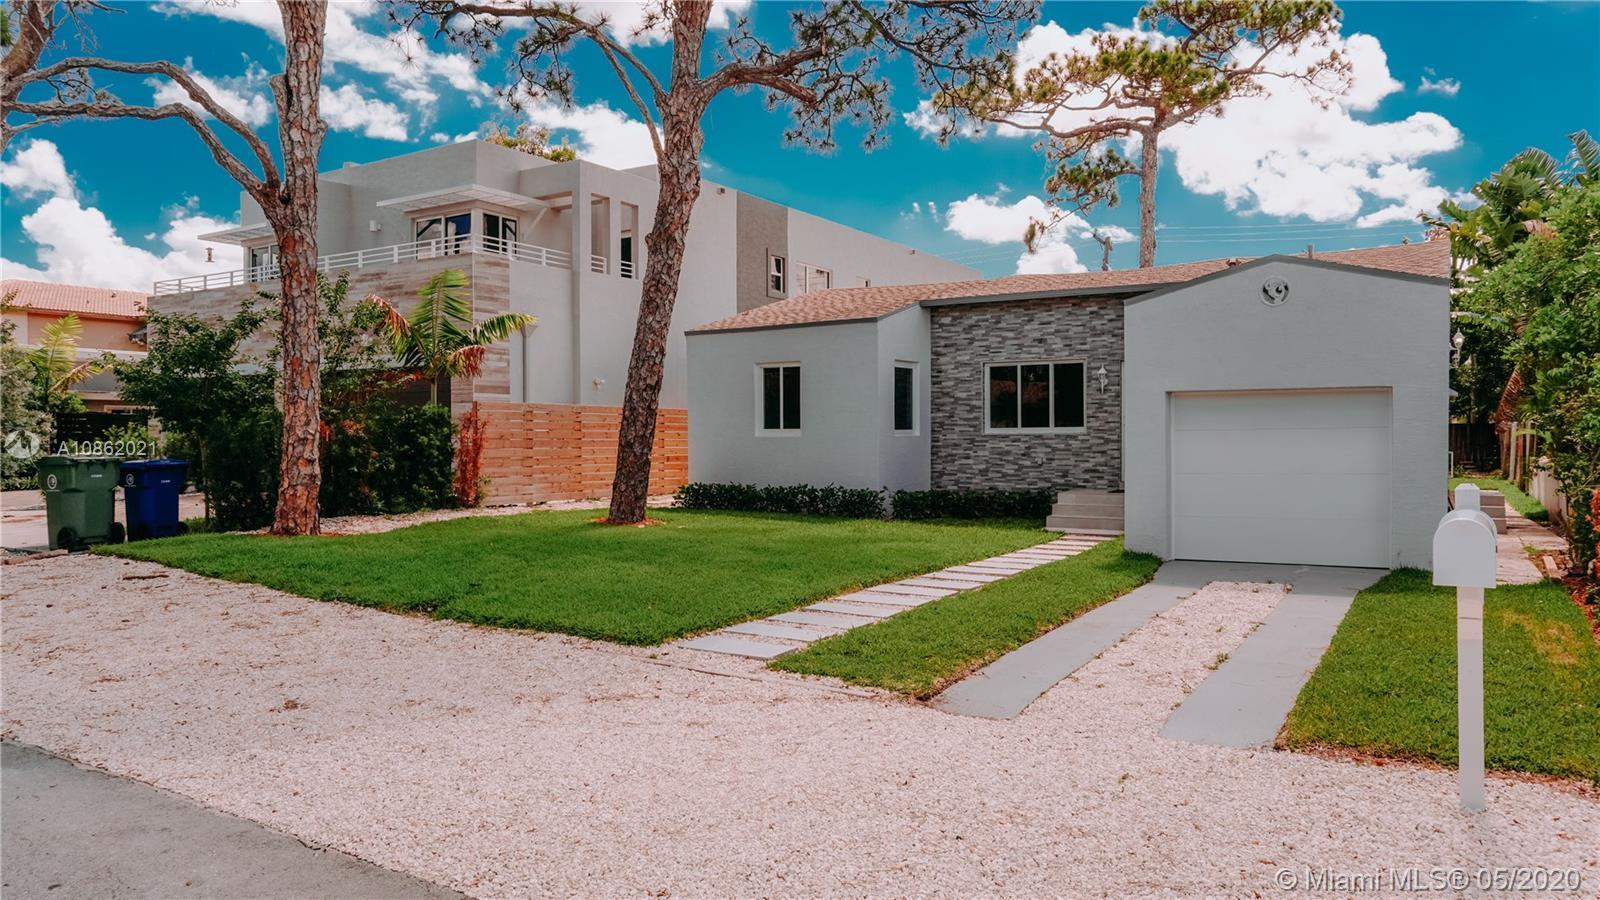 !!GREAT OPPORTUNITY!! TO BUY A BEAUTIFUL AND MODERN SINGLE FAMILY HOME, FULLY REBUILT: NEW ROOF, NEW